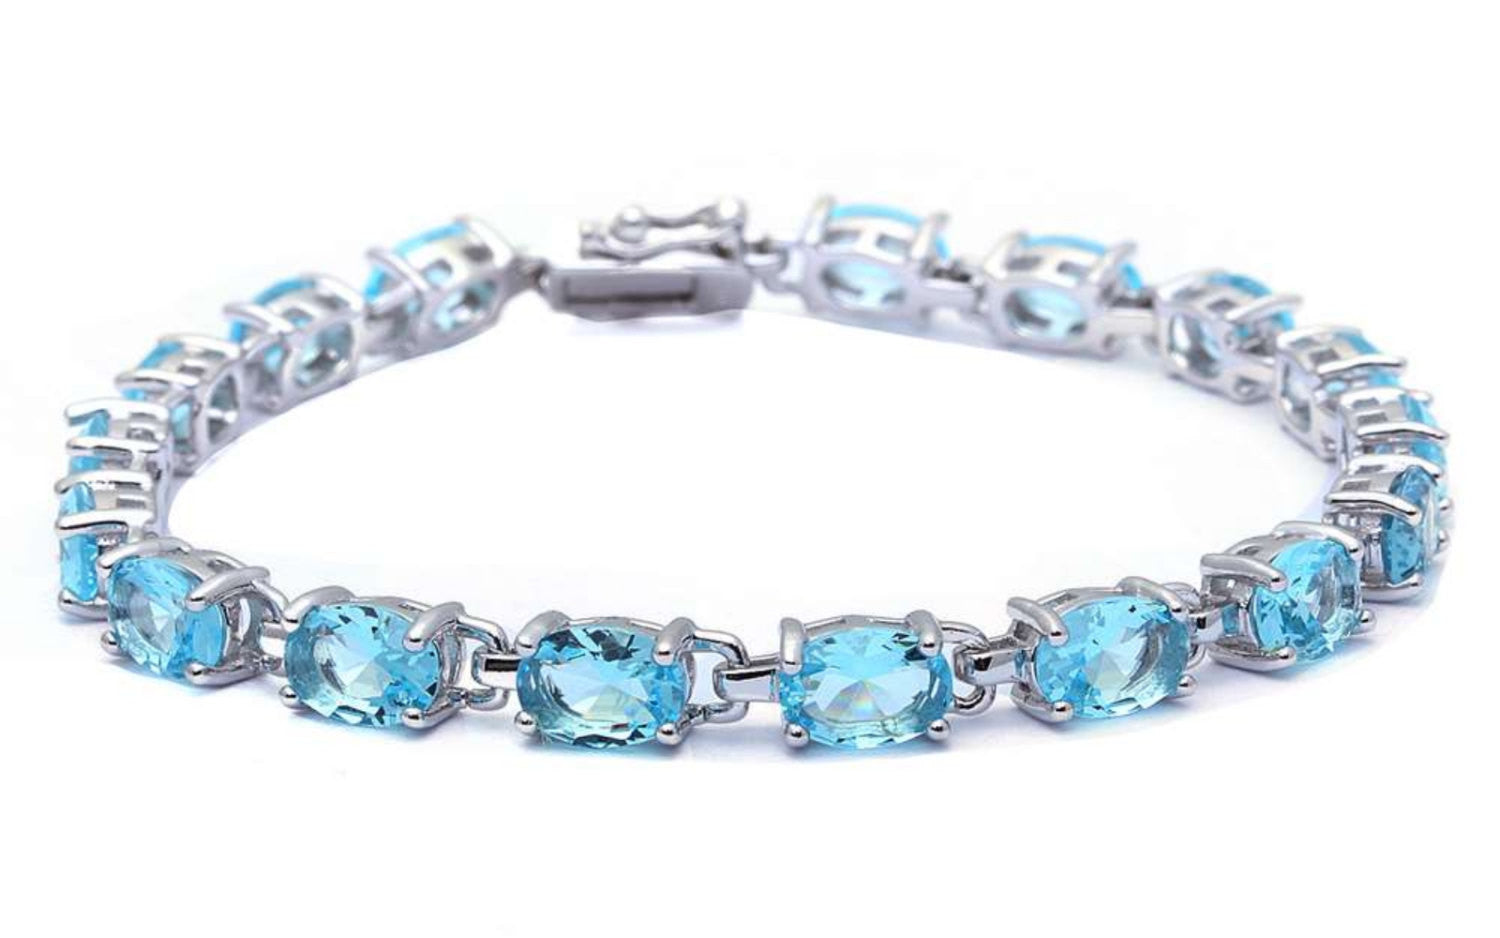 Ladies Classic Tennis Bracelet 13.5 Carat Oval Cut Blue Aquamarine Solid 925 Sterling Silver Solitaire Wedding Engagement Tennis Bracelet